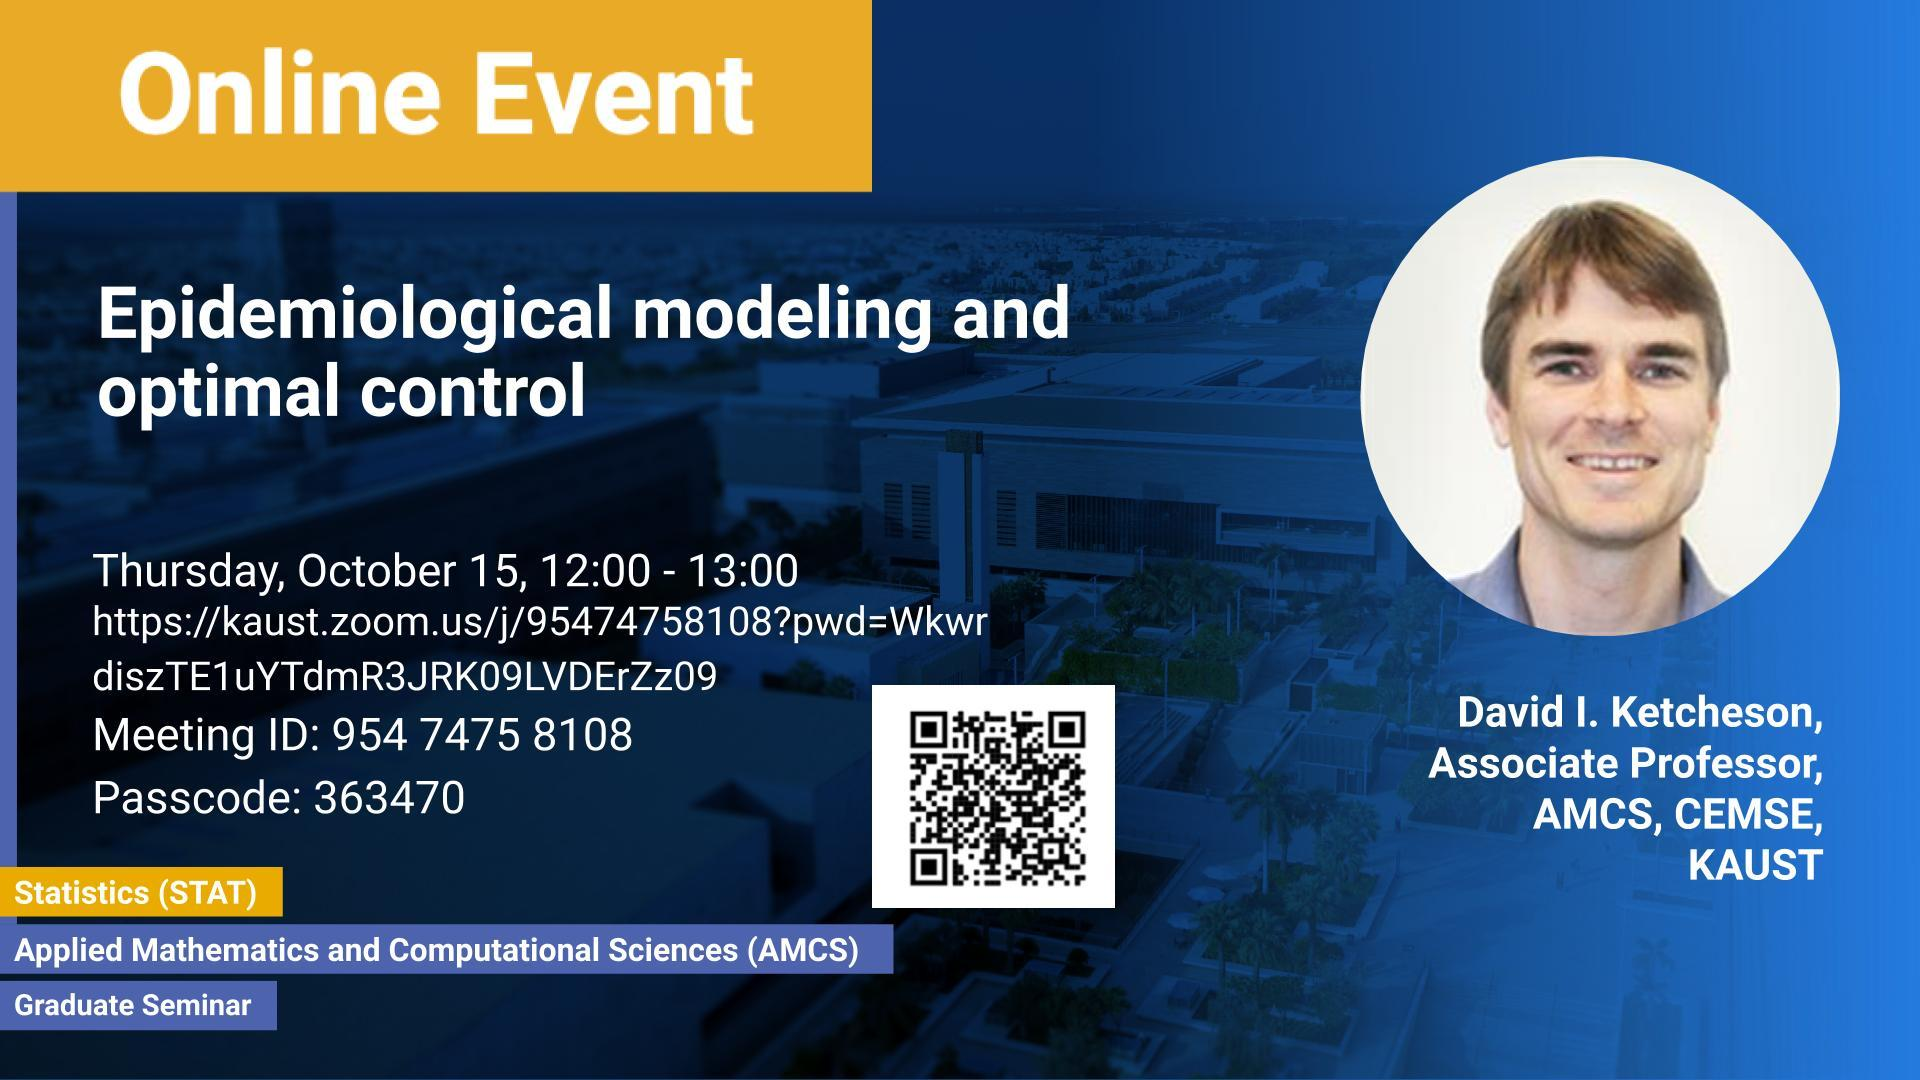 KAUST-CEMSE-Program-AMCS-STAT-David-Katcheson-Graduate-Seminar-Meaningful